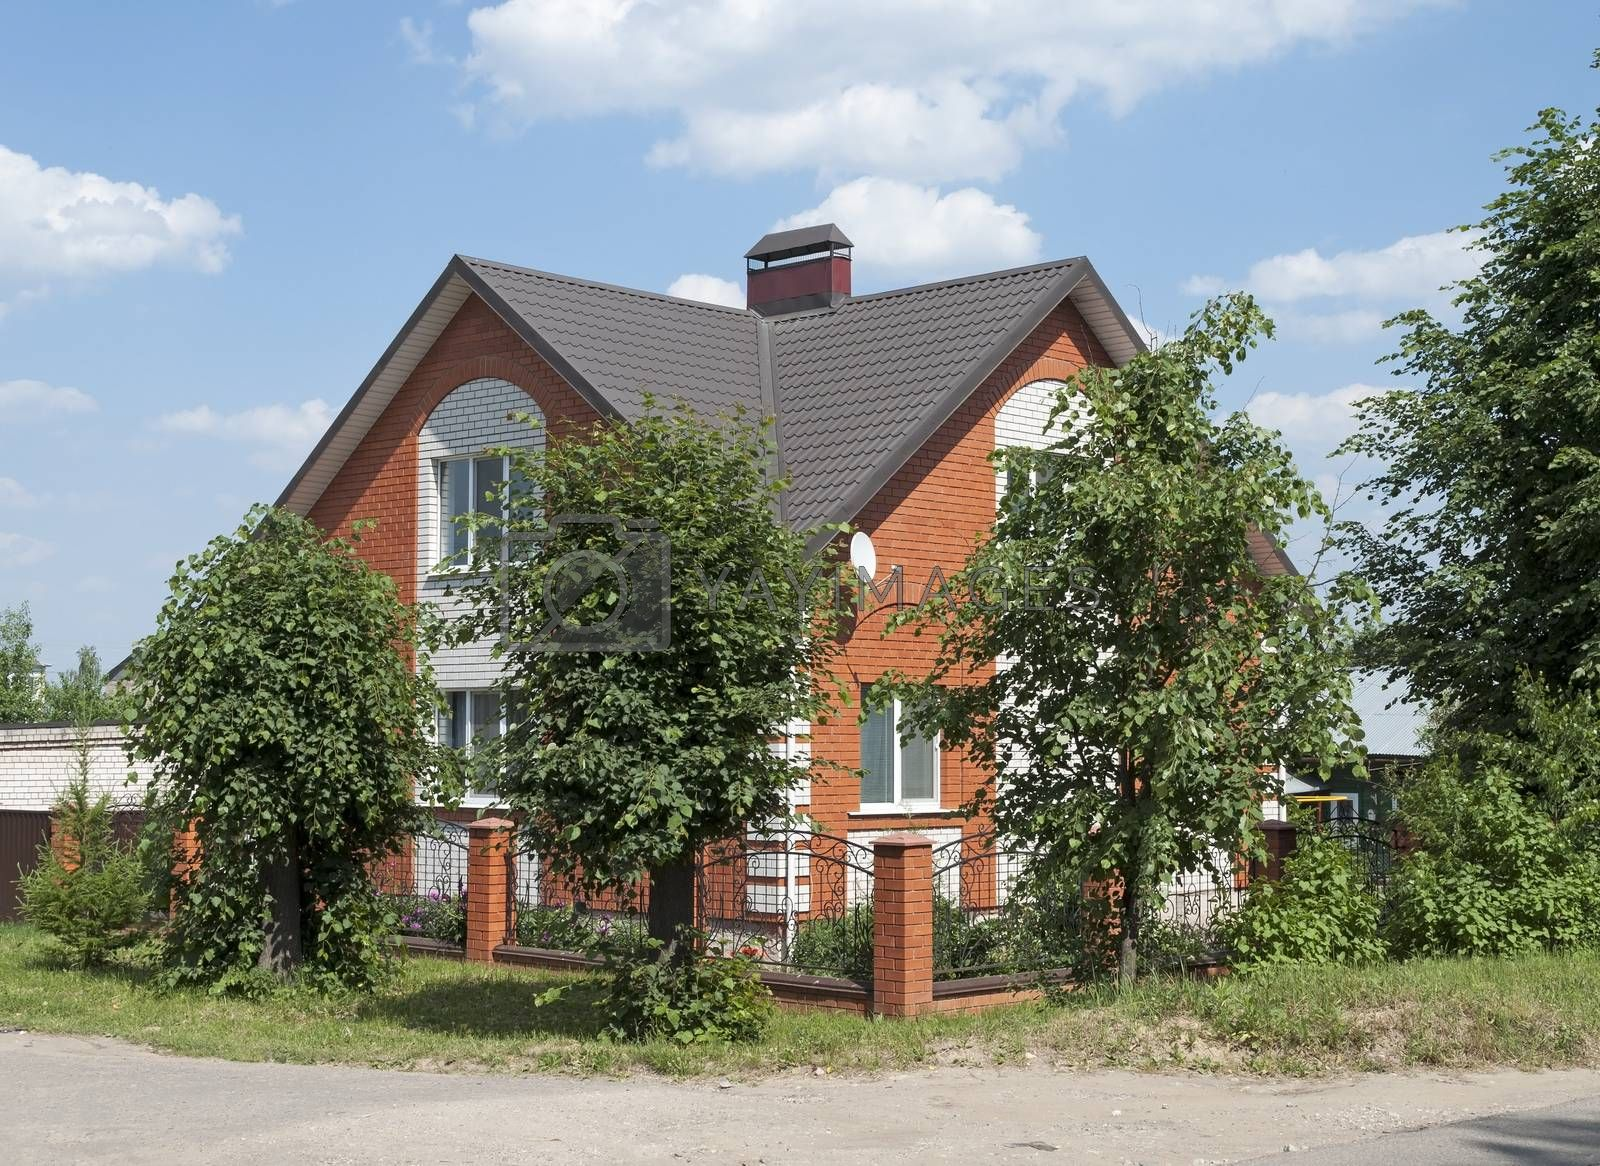 New red brick house, sunny summer day